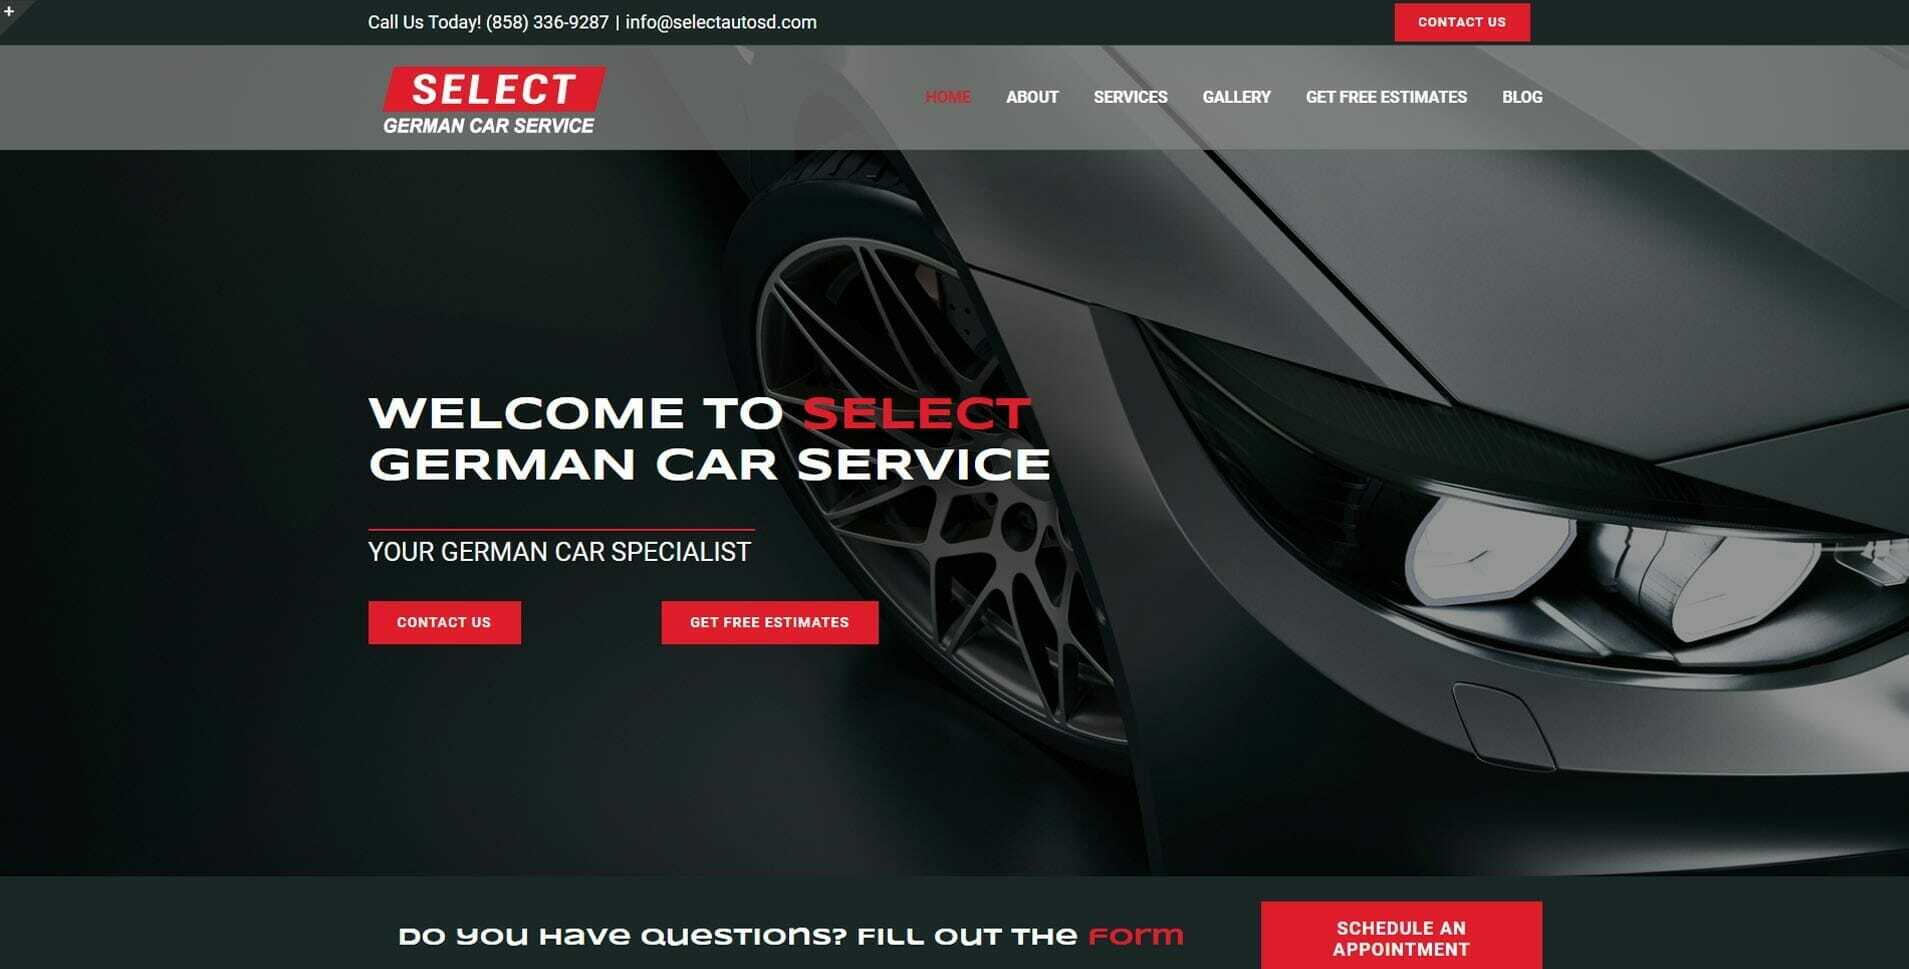 Select German Car Service Image